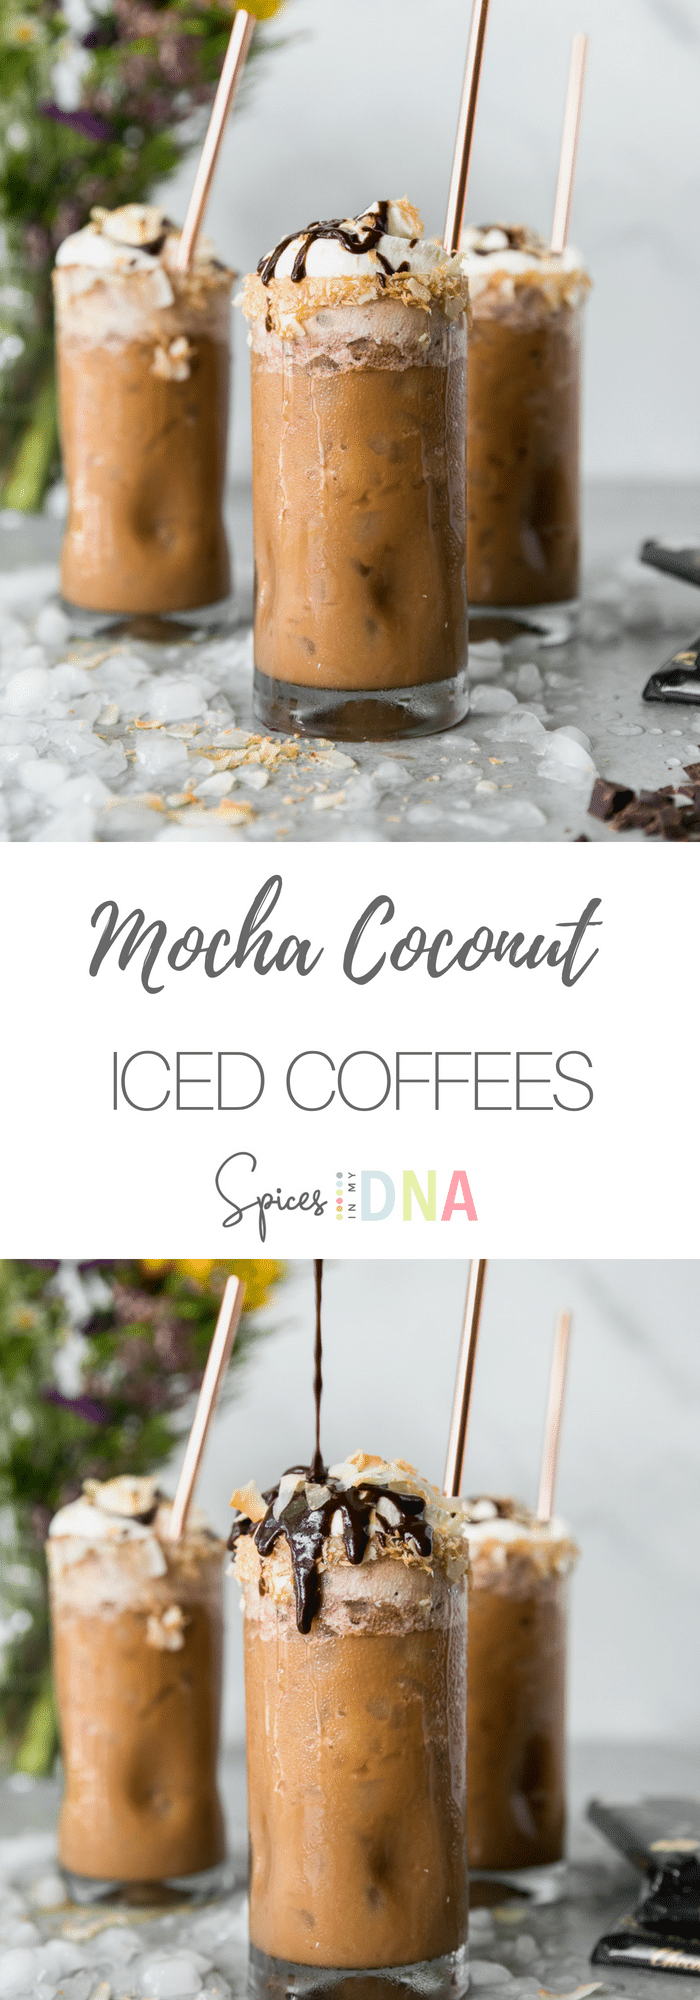 These Mocha Coconut Iced Coffees are the perfect treat to cool down with this summer! They're sweetened with a touch of maple syrup and a super easy to make dark chocolate fudge sauce! And to finish - they're topped with whipped cream, more fudge sauce, and toasted coconut! An iced coffee and chocolate lovers dream! #icedcoffee #mocha #coffee #coconut